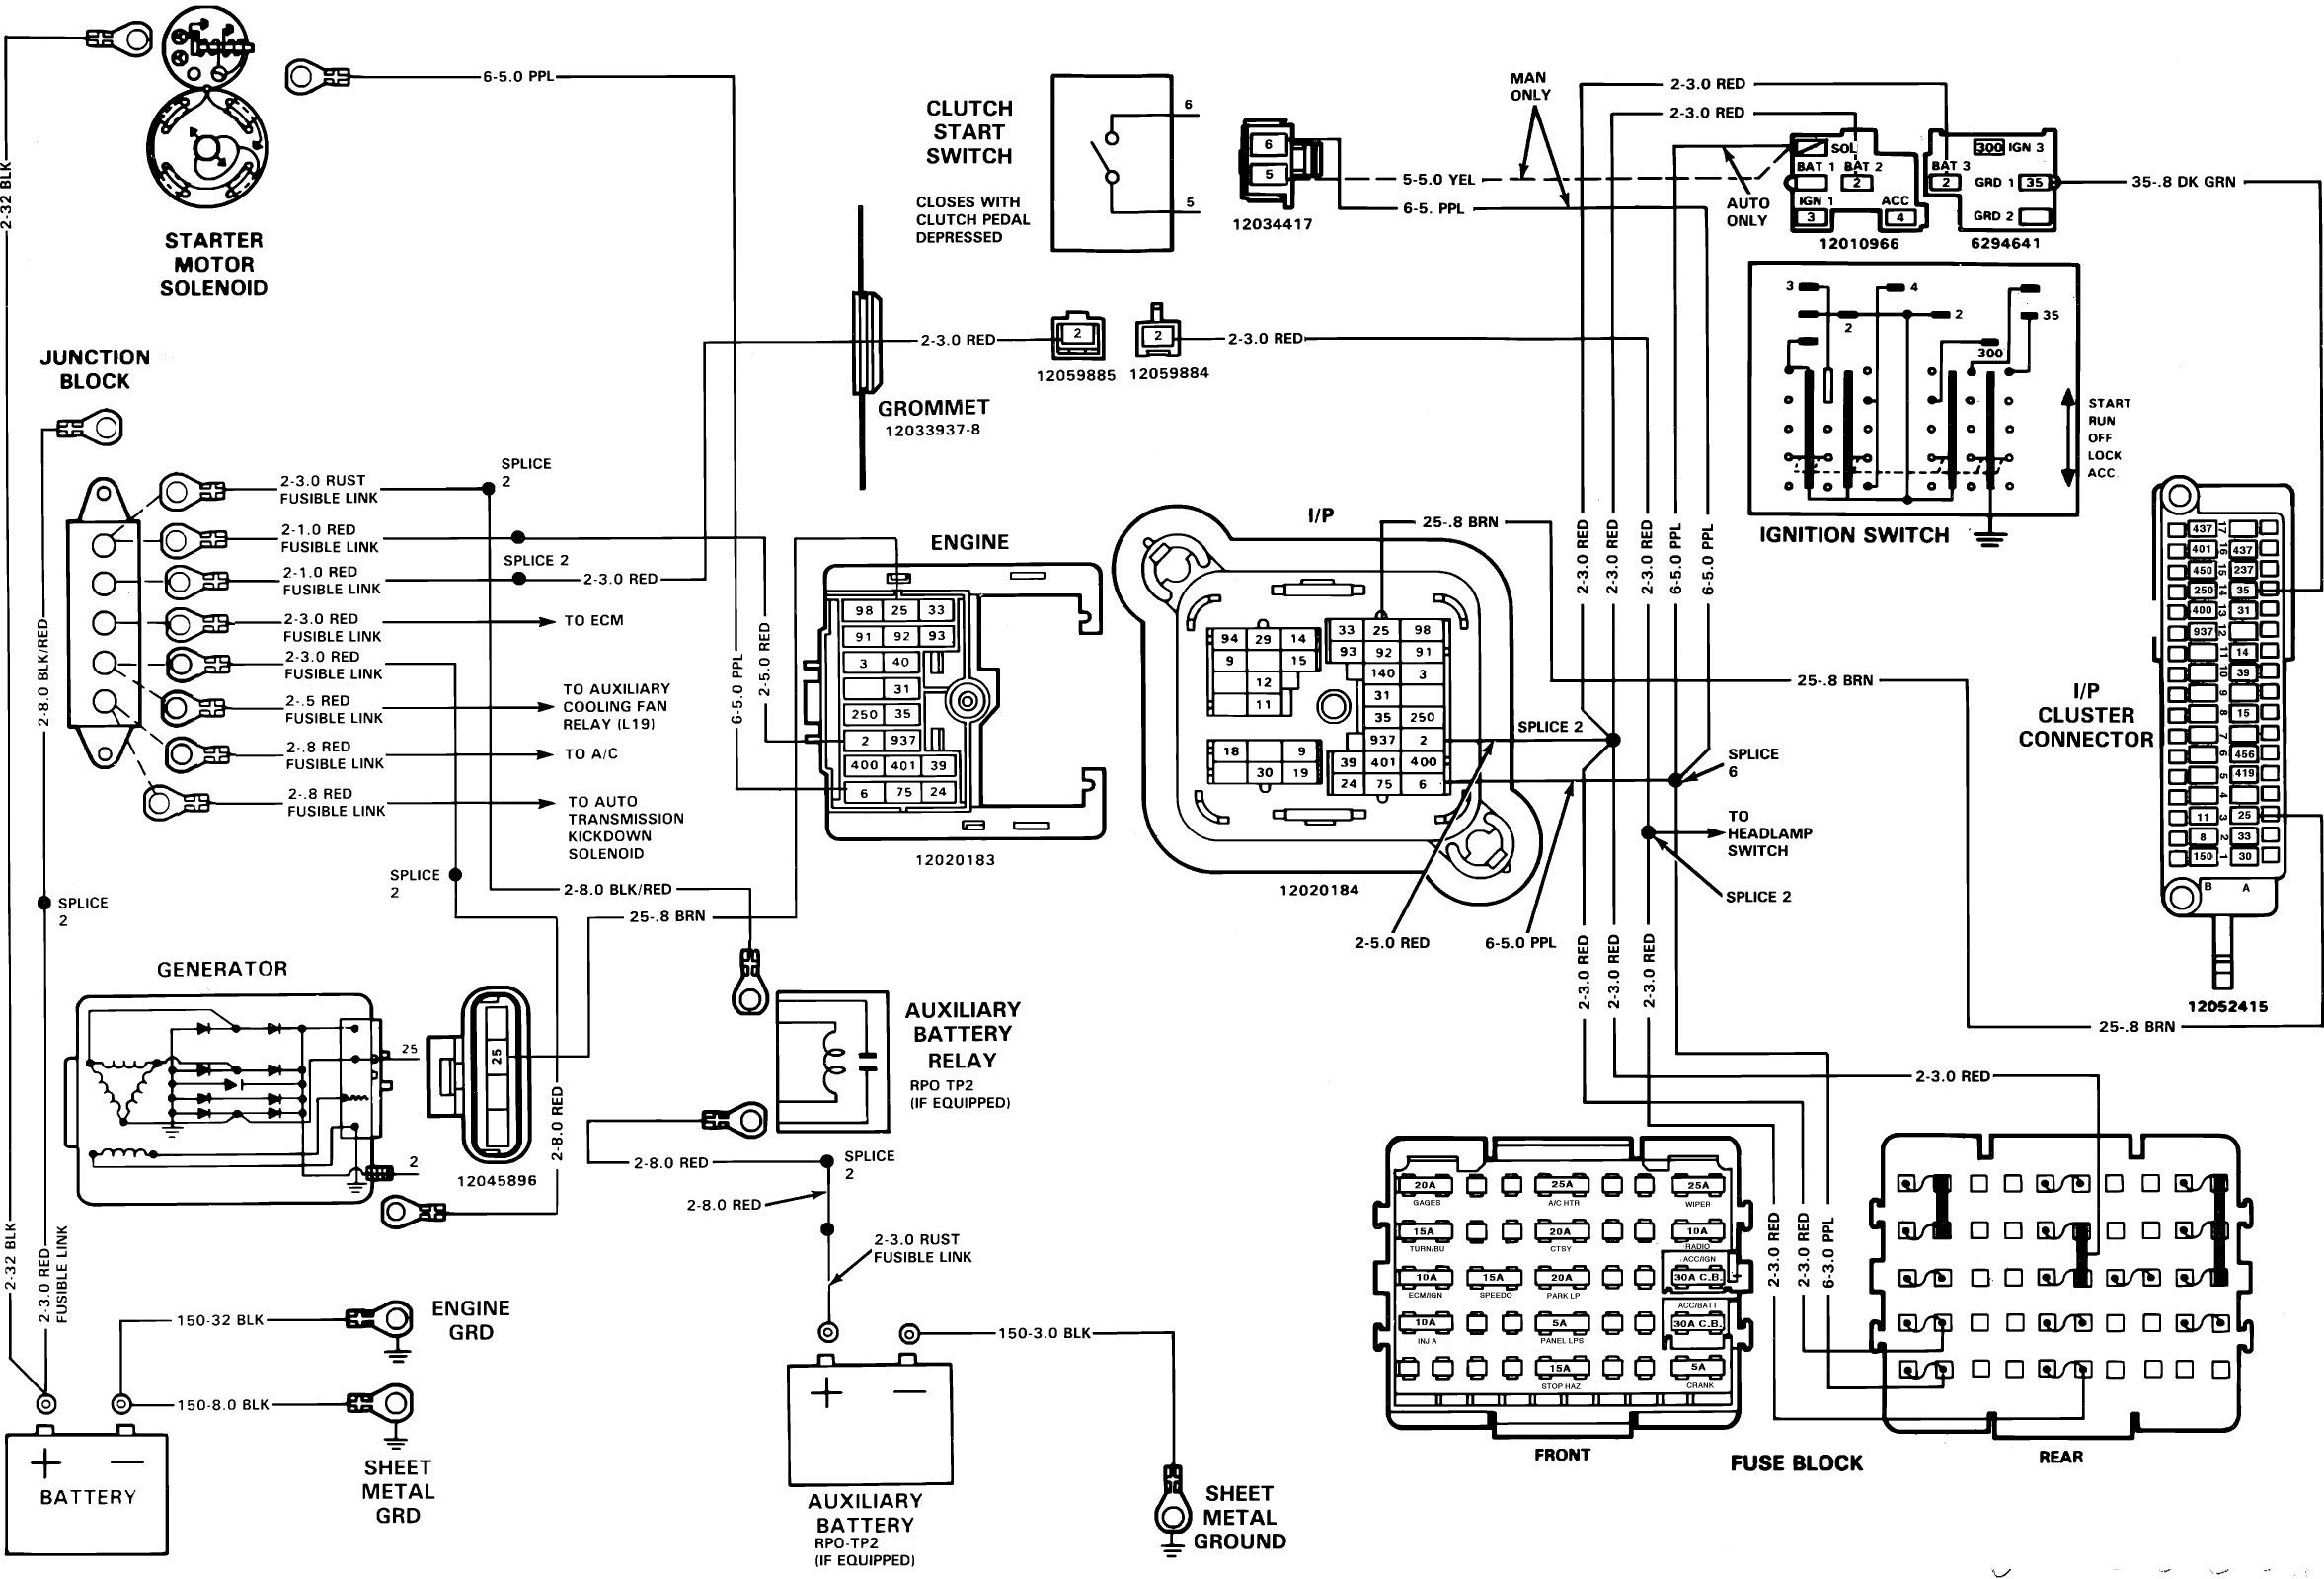 1988 toyota Pickup Engine Diagram 1989 Chevrolet C1500 Wiring Diagram 1989  Chevy 1500 Stereo Wiring